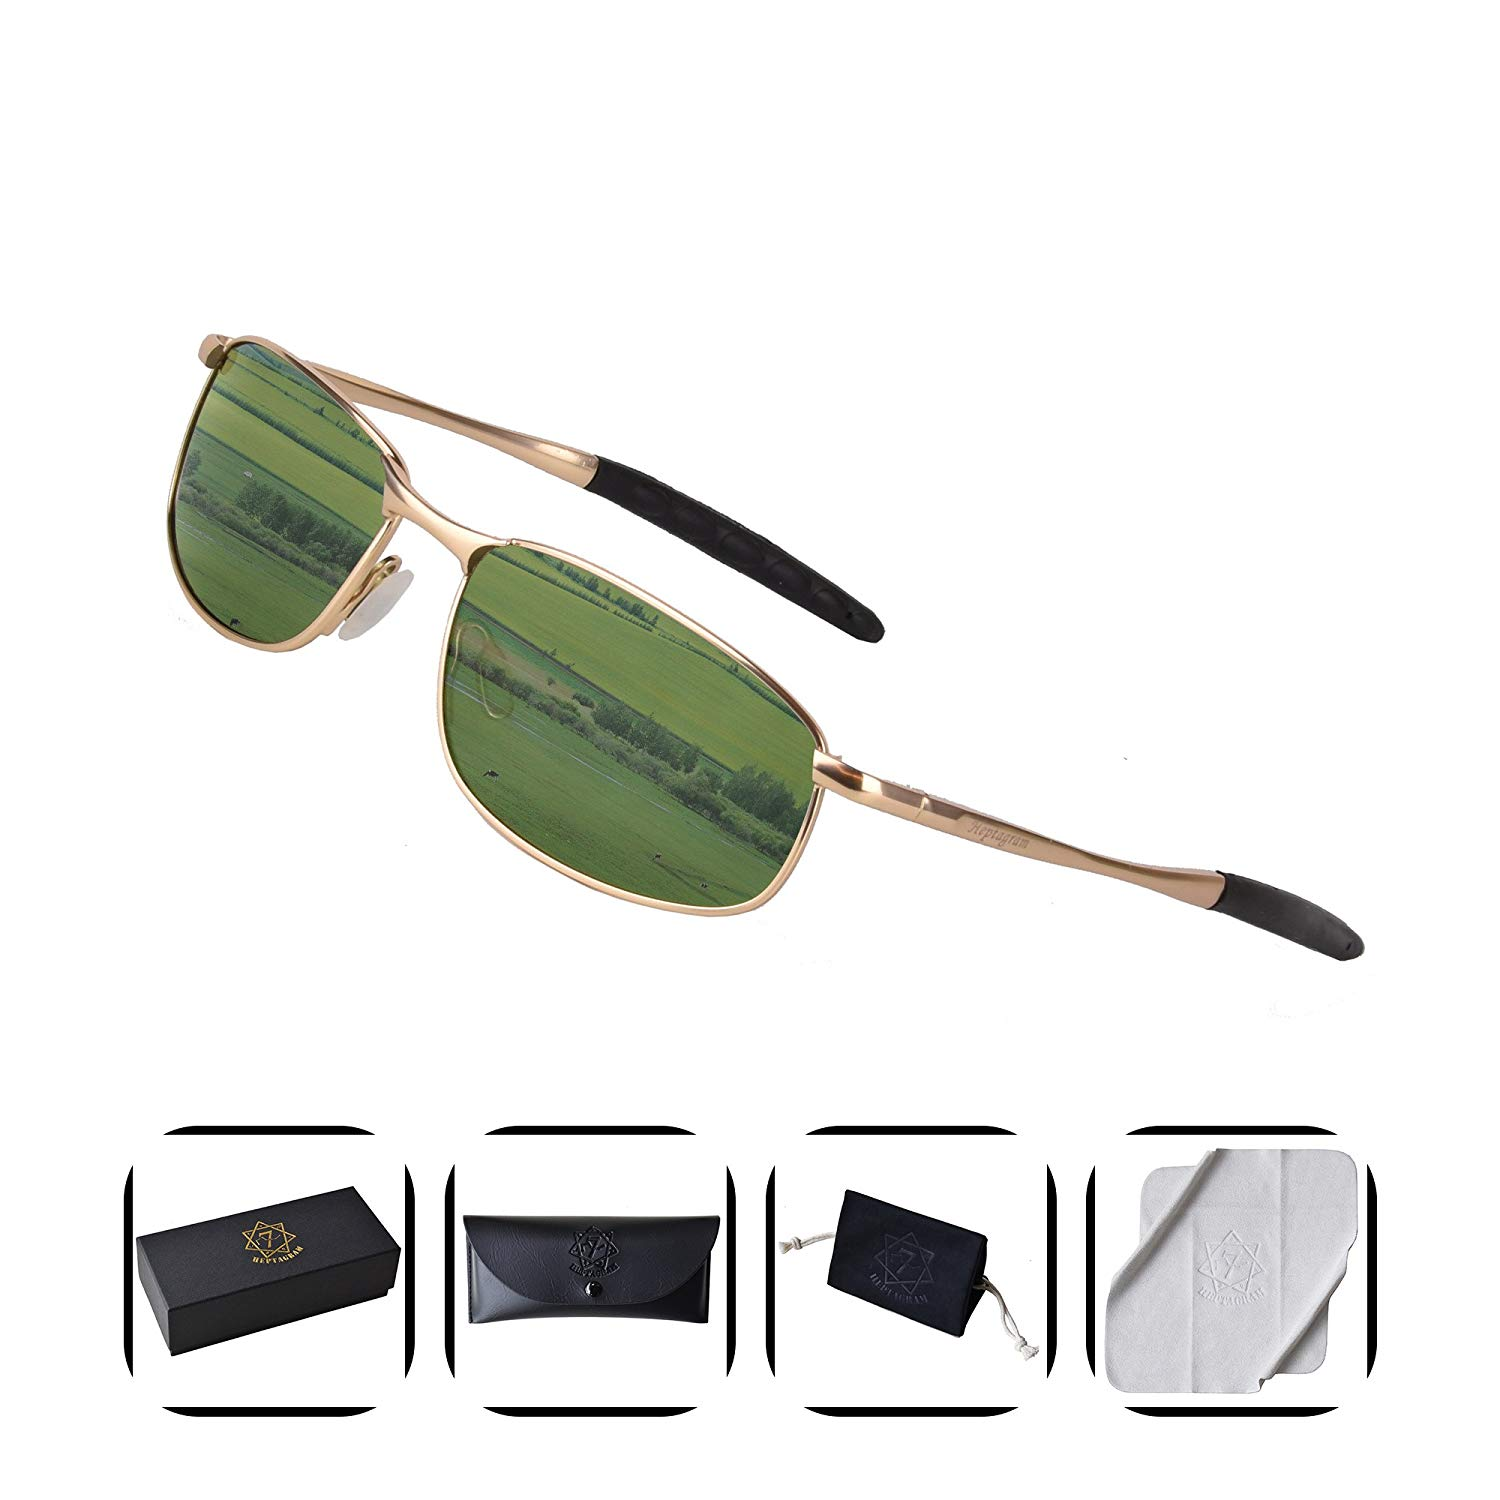 093e9dbb2 Get Quotations · Polarized Retro Sunglasses for Men , HEPTAGRAM Rectangle  Metal Frame for Driving Fishing Sporting with Case